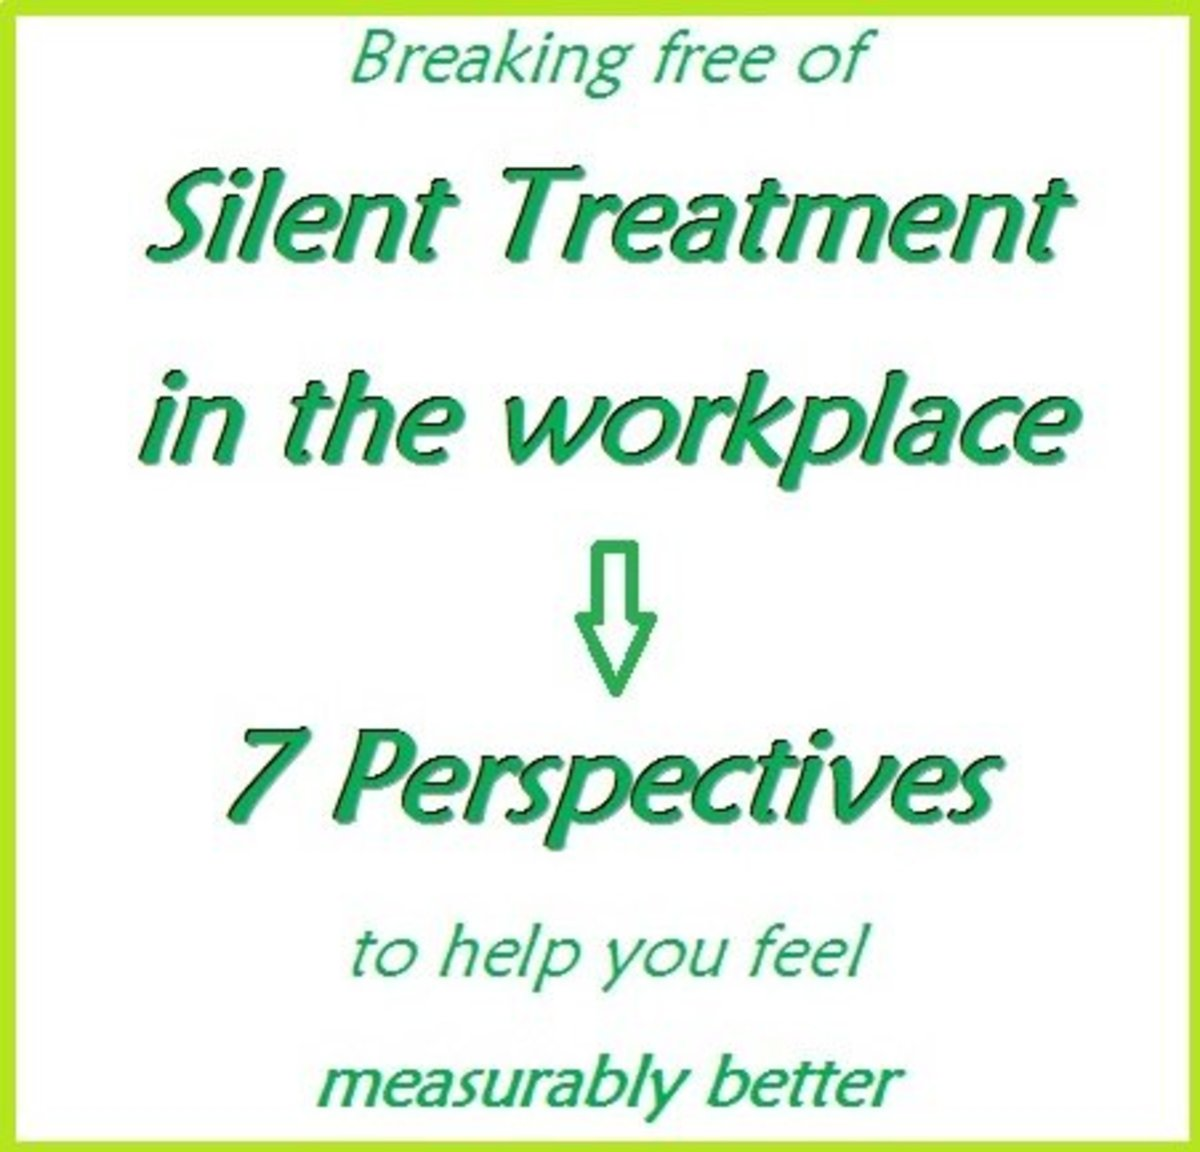 Are you suffering Silent Treatment in the Workplace? – learn 7 Alternative Perspectives to help you feel better